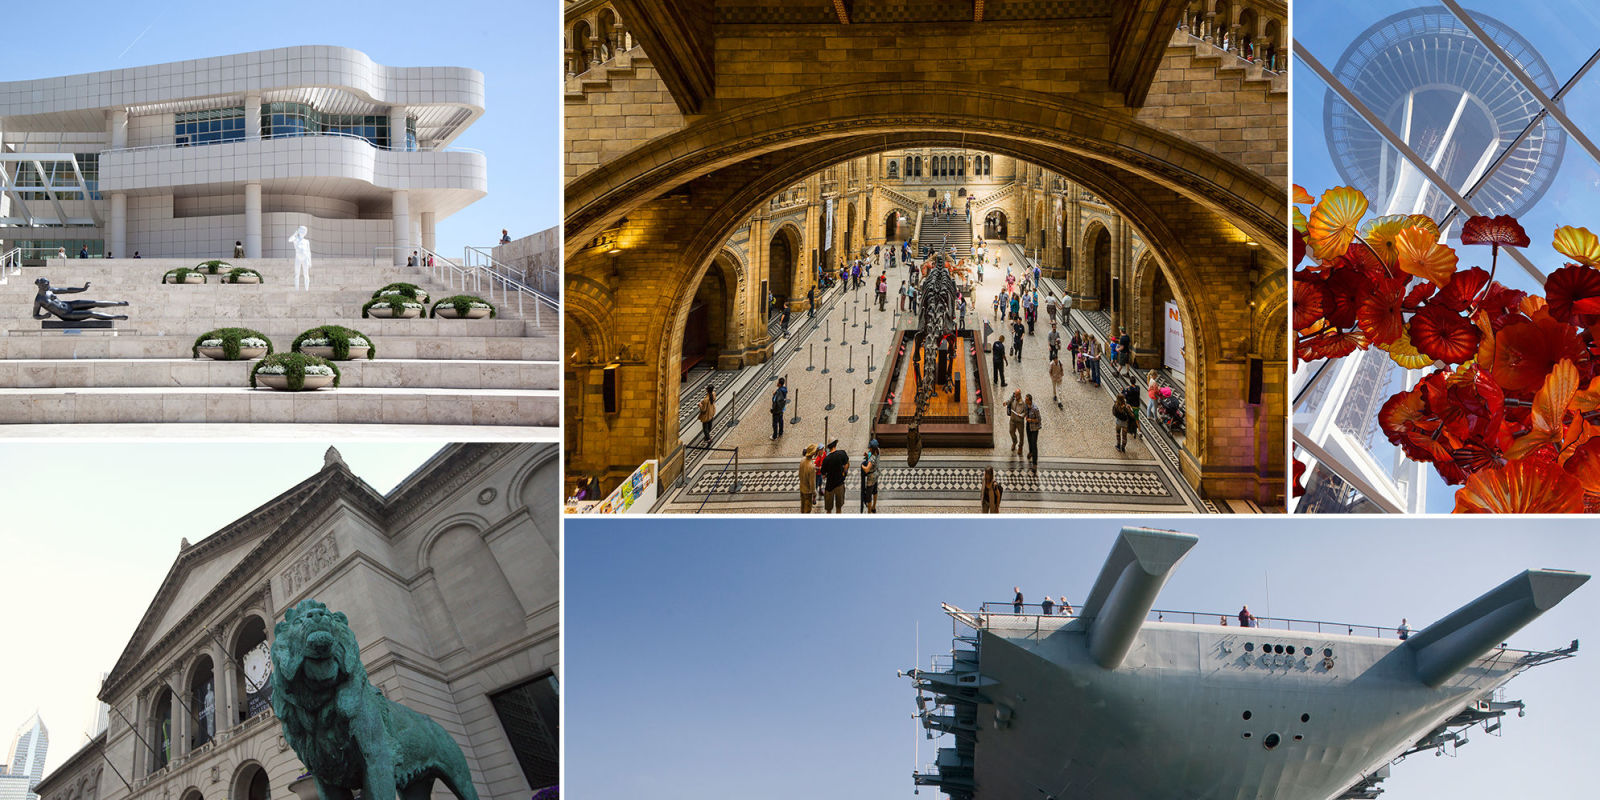 20 best museums in america 2018 most popular art for Best museums in america